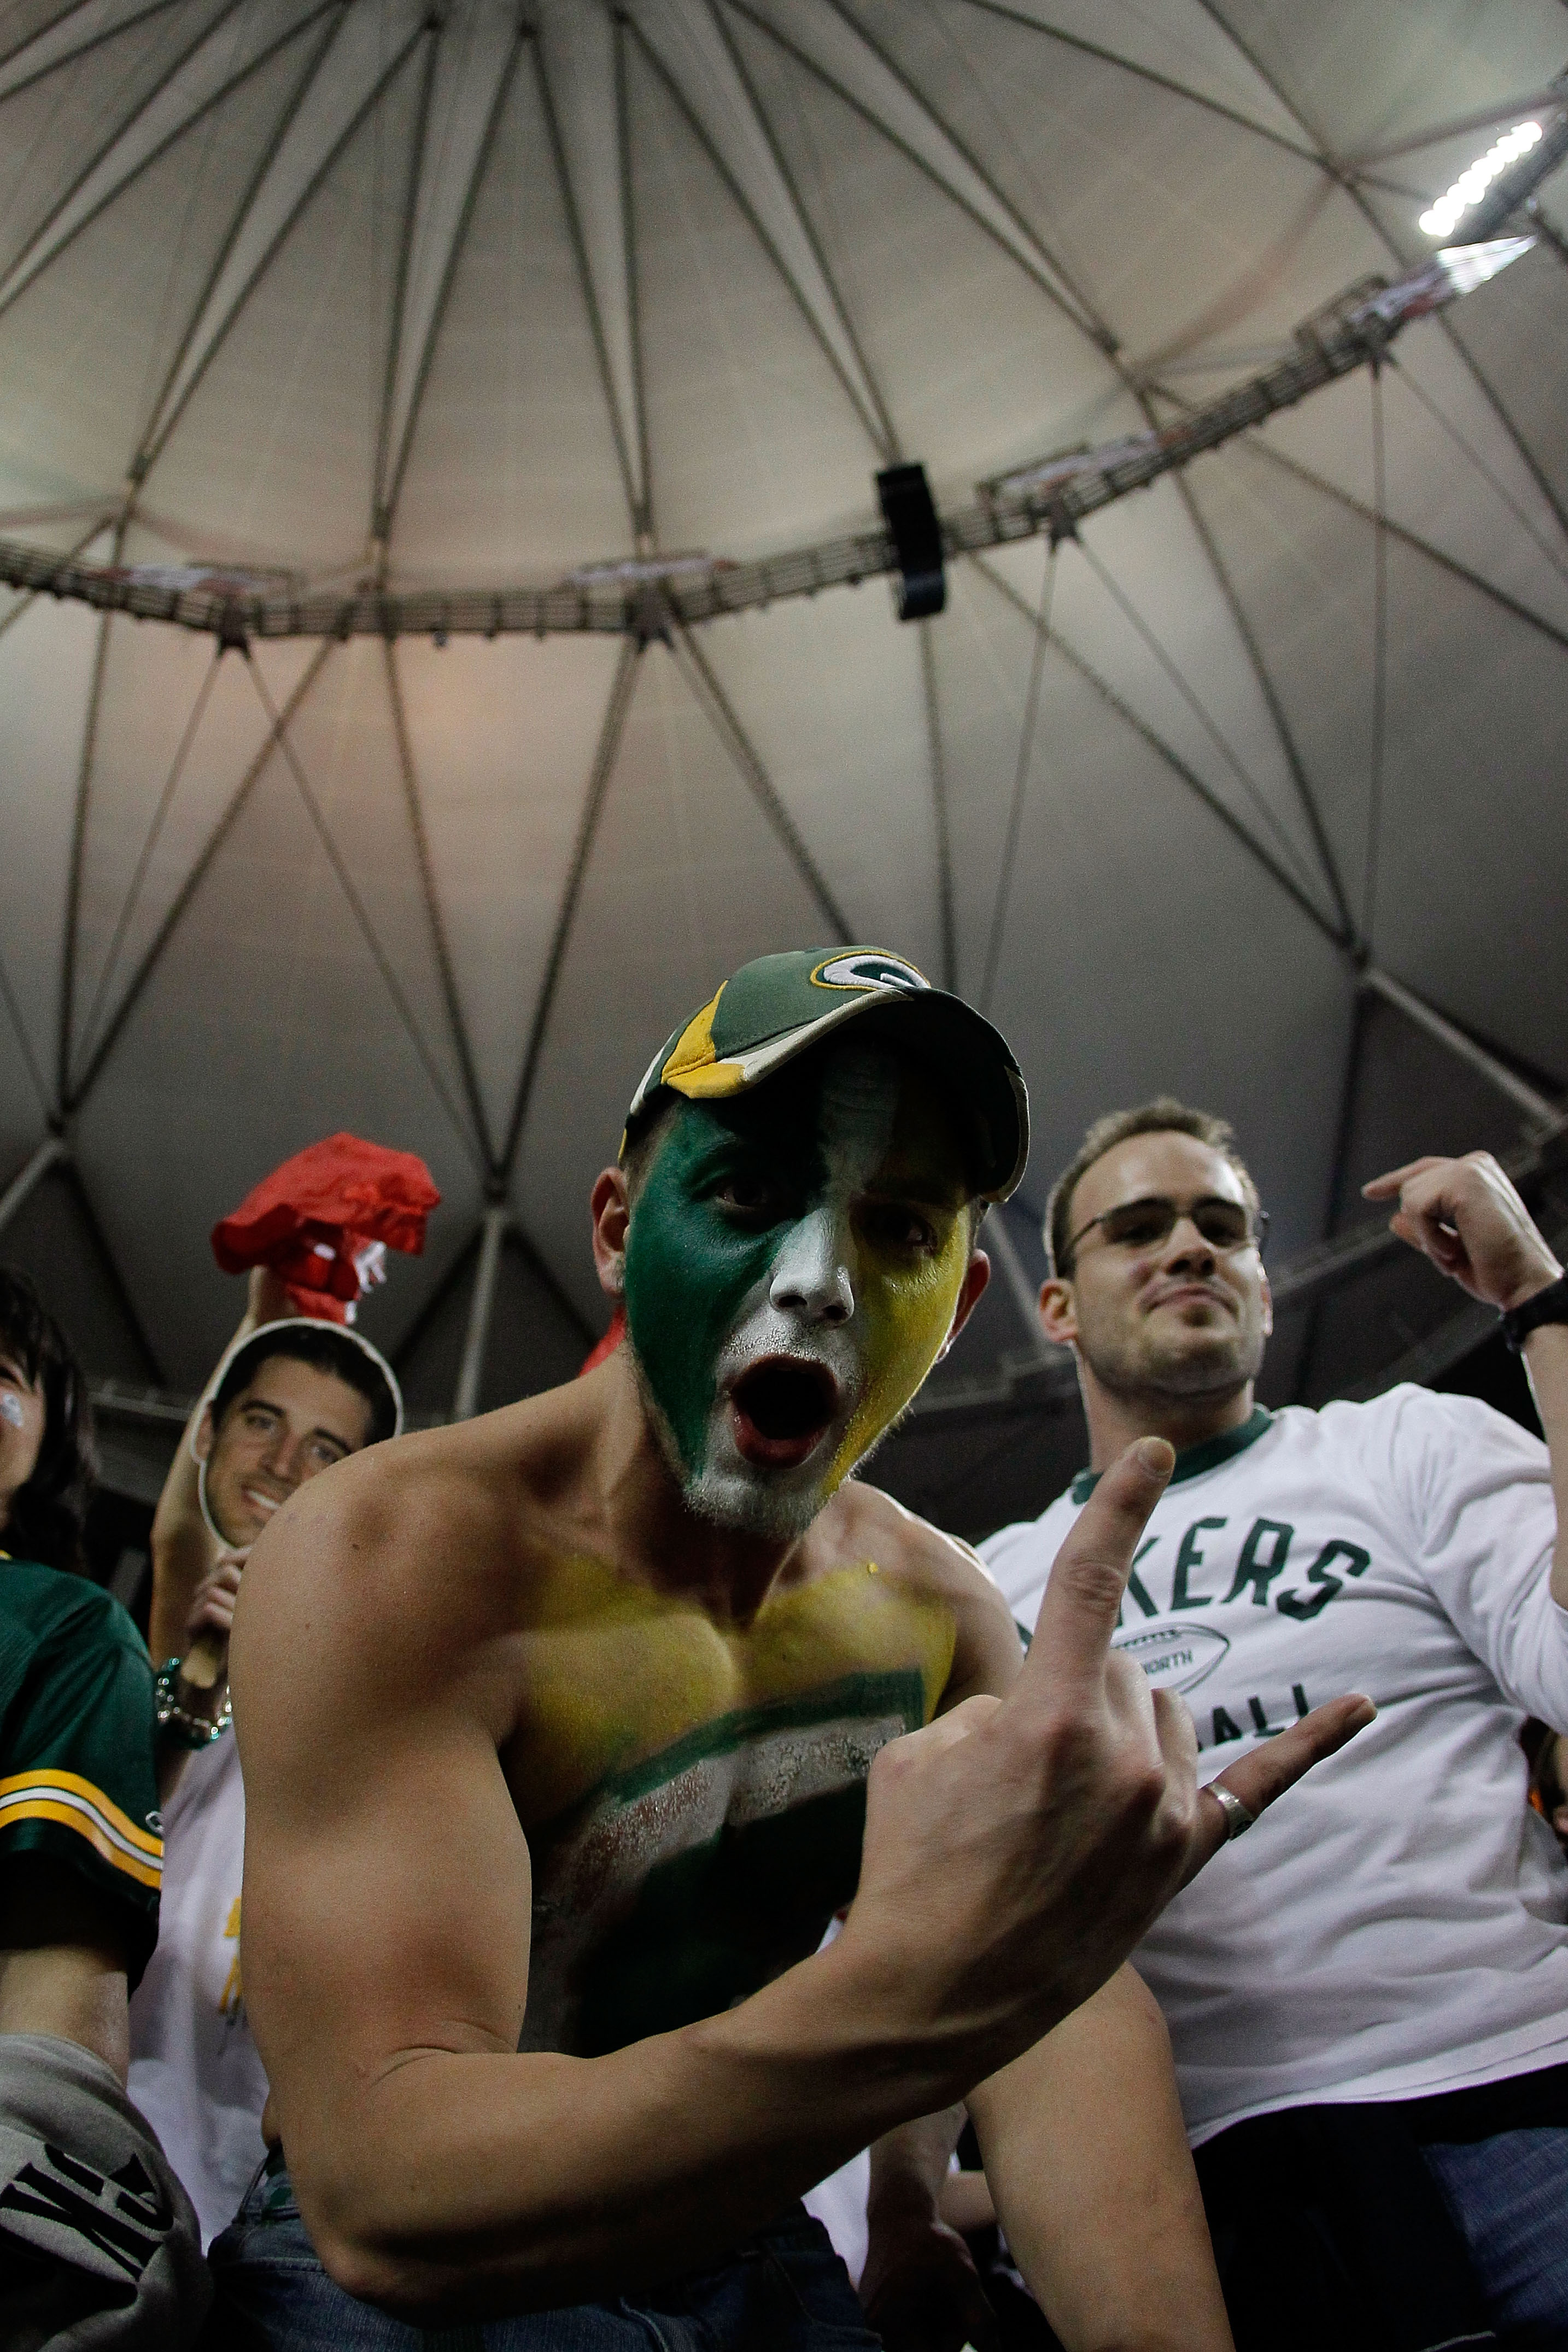 ATLANTA, GA - JANUARY 15:  A fan of  the Green Bay Packers celebrates after the Packers won 48-21 against the Atlanta Falcons during their 2011 NFC divisional playoff game at Georgia Dome on January 15, 2011 in Atlanta, Georgia.  (Photo by Kevin C. Cox/Ge